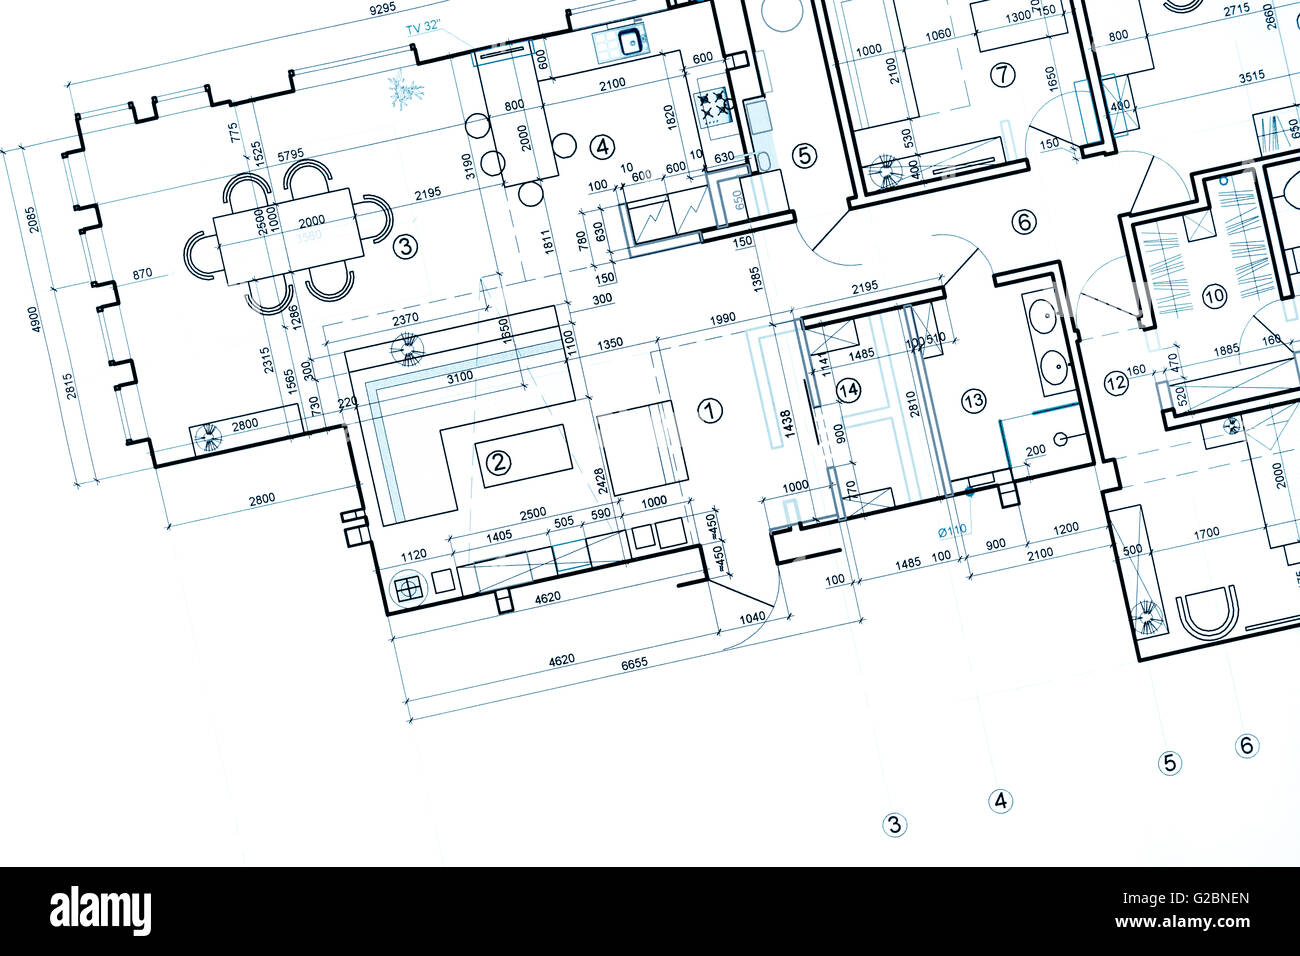 Blueprint floor plans architectural drawings construction stock blueprint floor plans architectural drawings construction background malvernweather Images